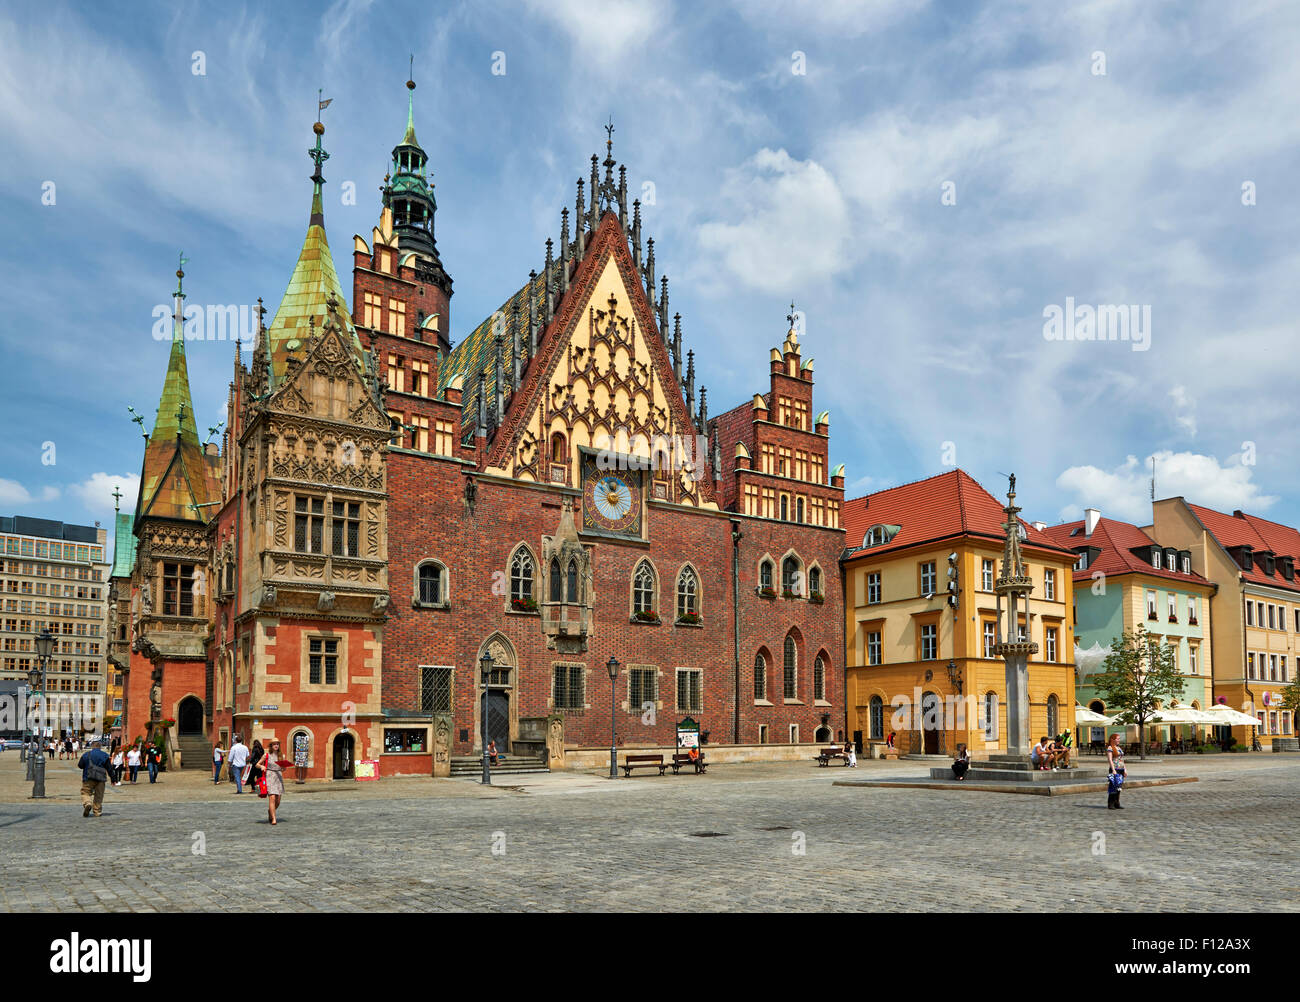 historical City hall on Market Square or Ryneck of Wroclaw, Lower Silesia, Poland, Europe Stock Photo